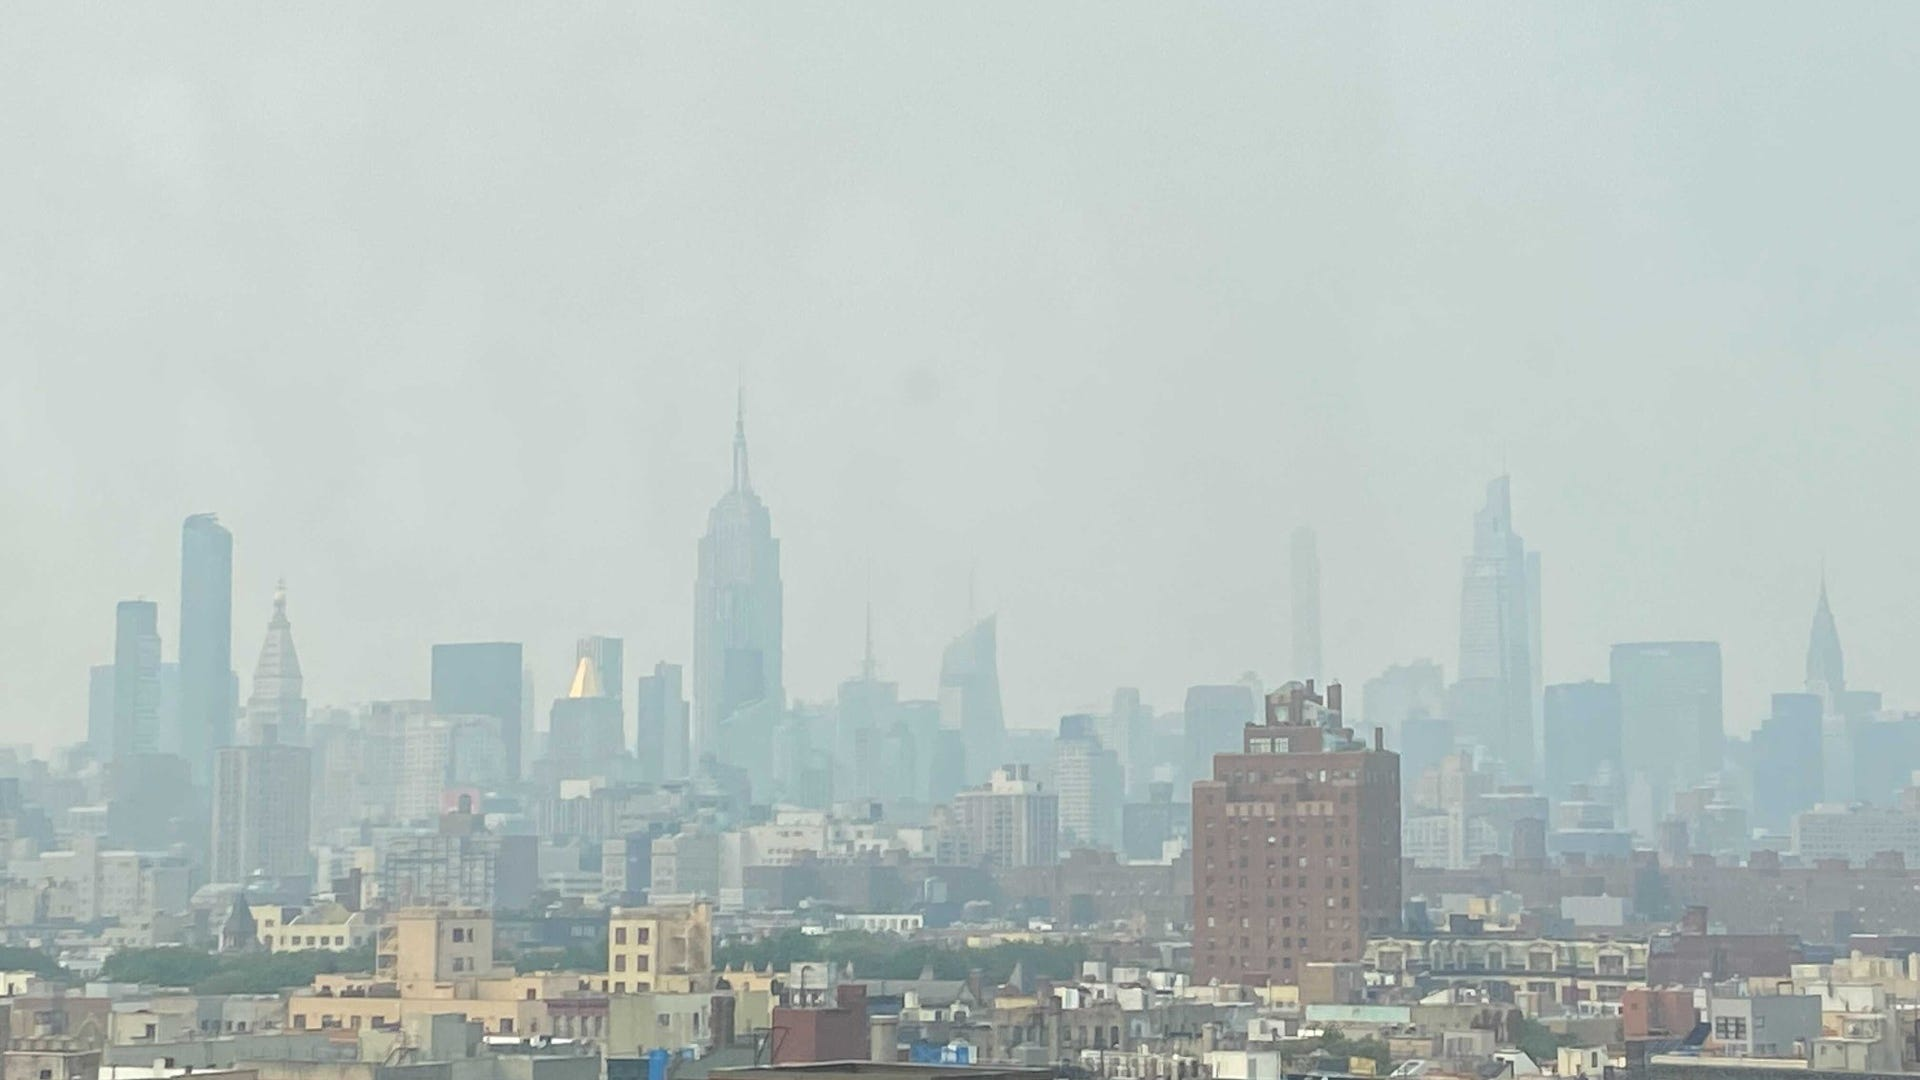 NYC sees hazy skies, worst air quality in years due to West Coast wildfires